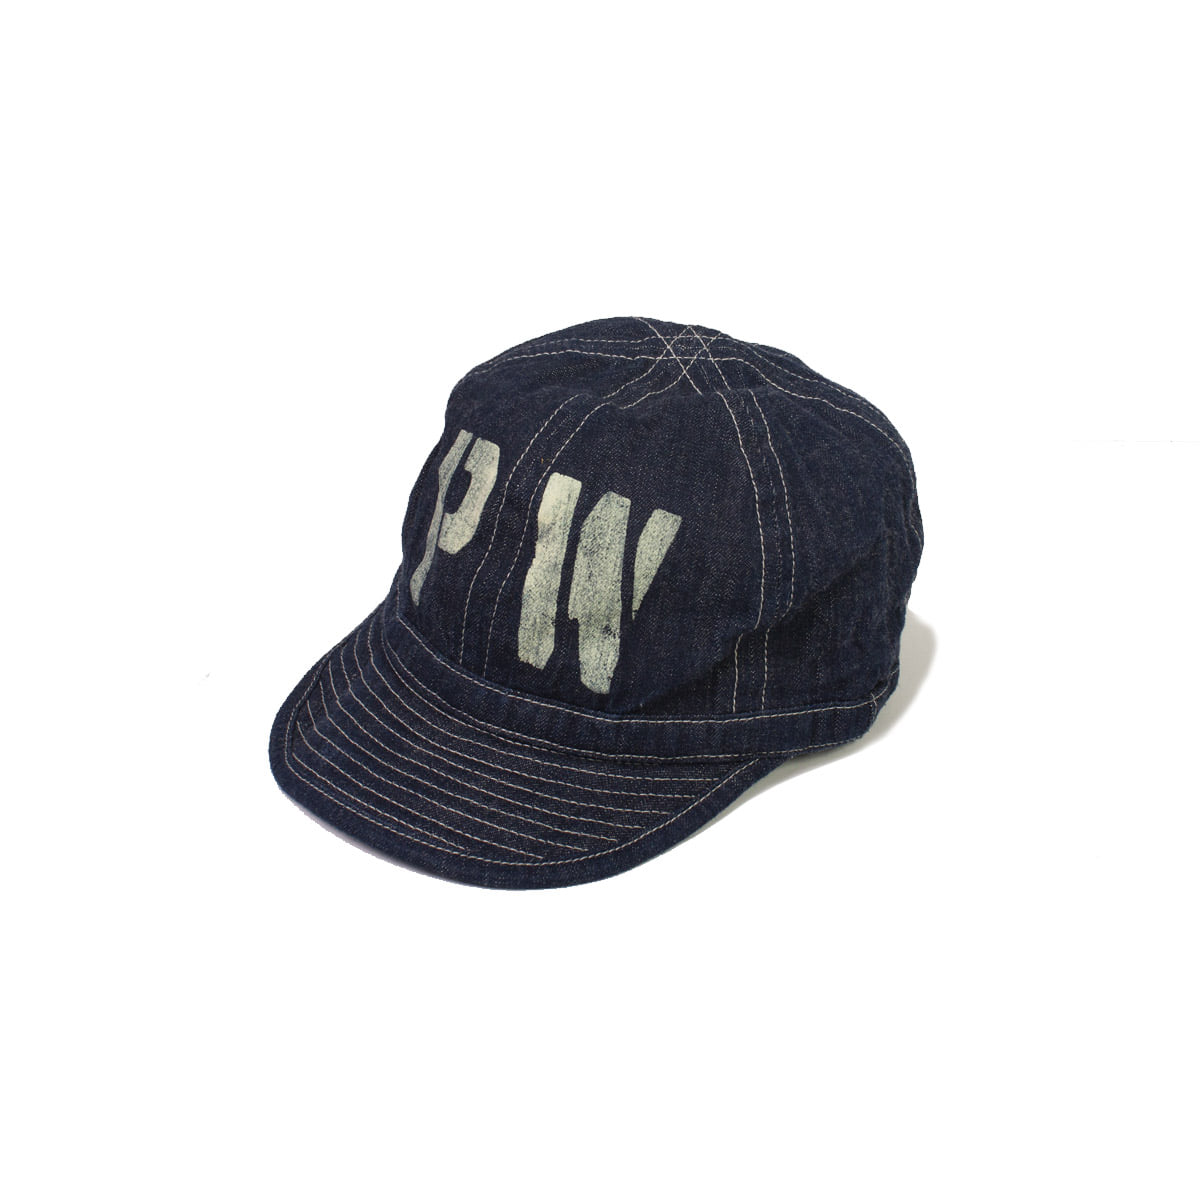 [BUZZ RICKSON'S] ARMY DENIM CAP 'NAVY'